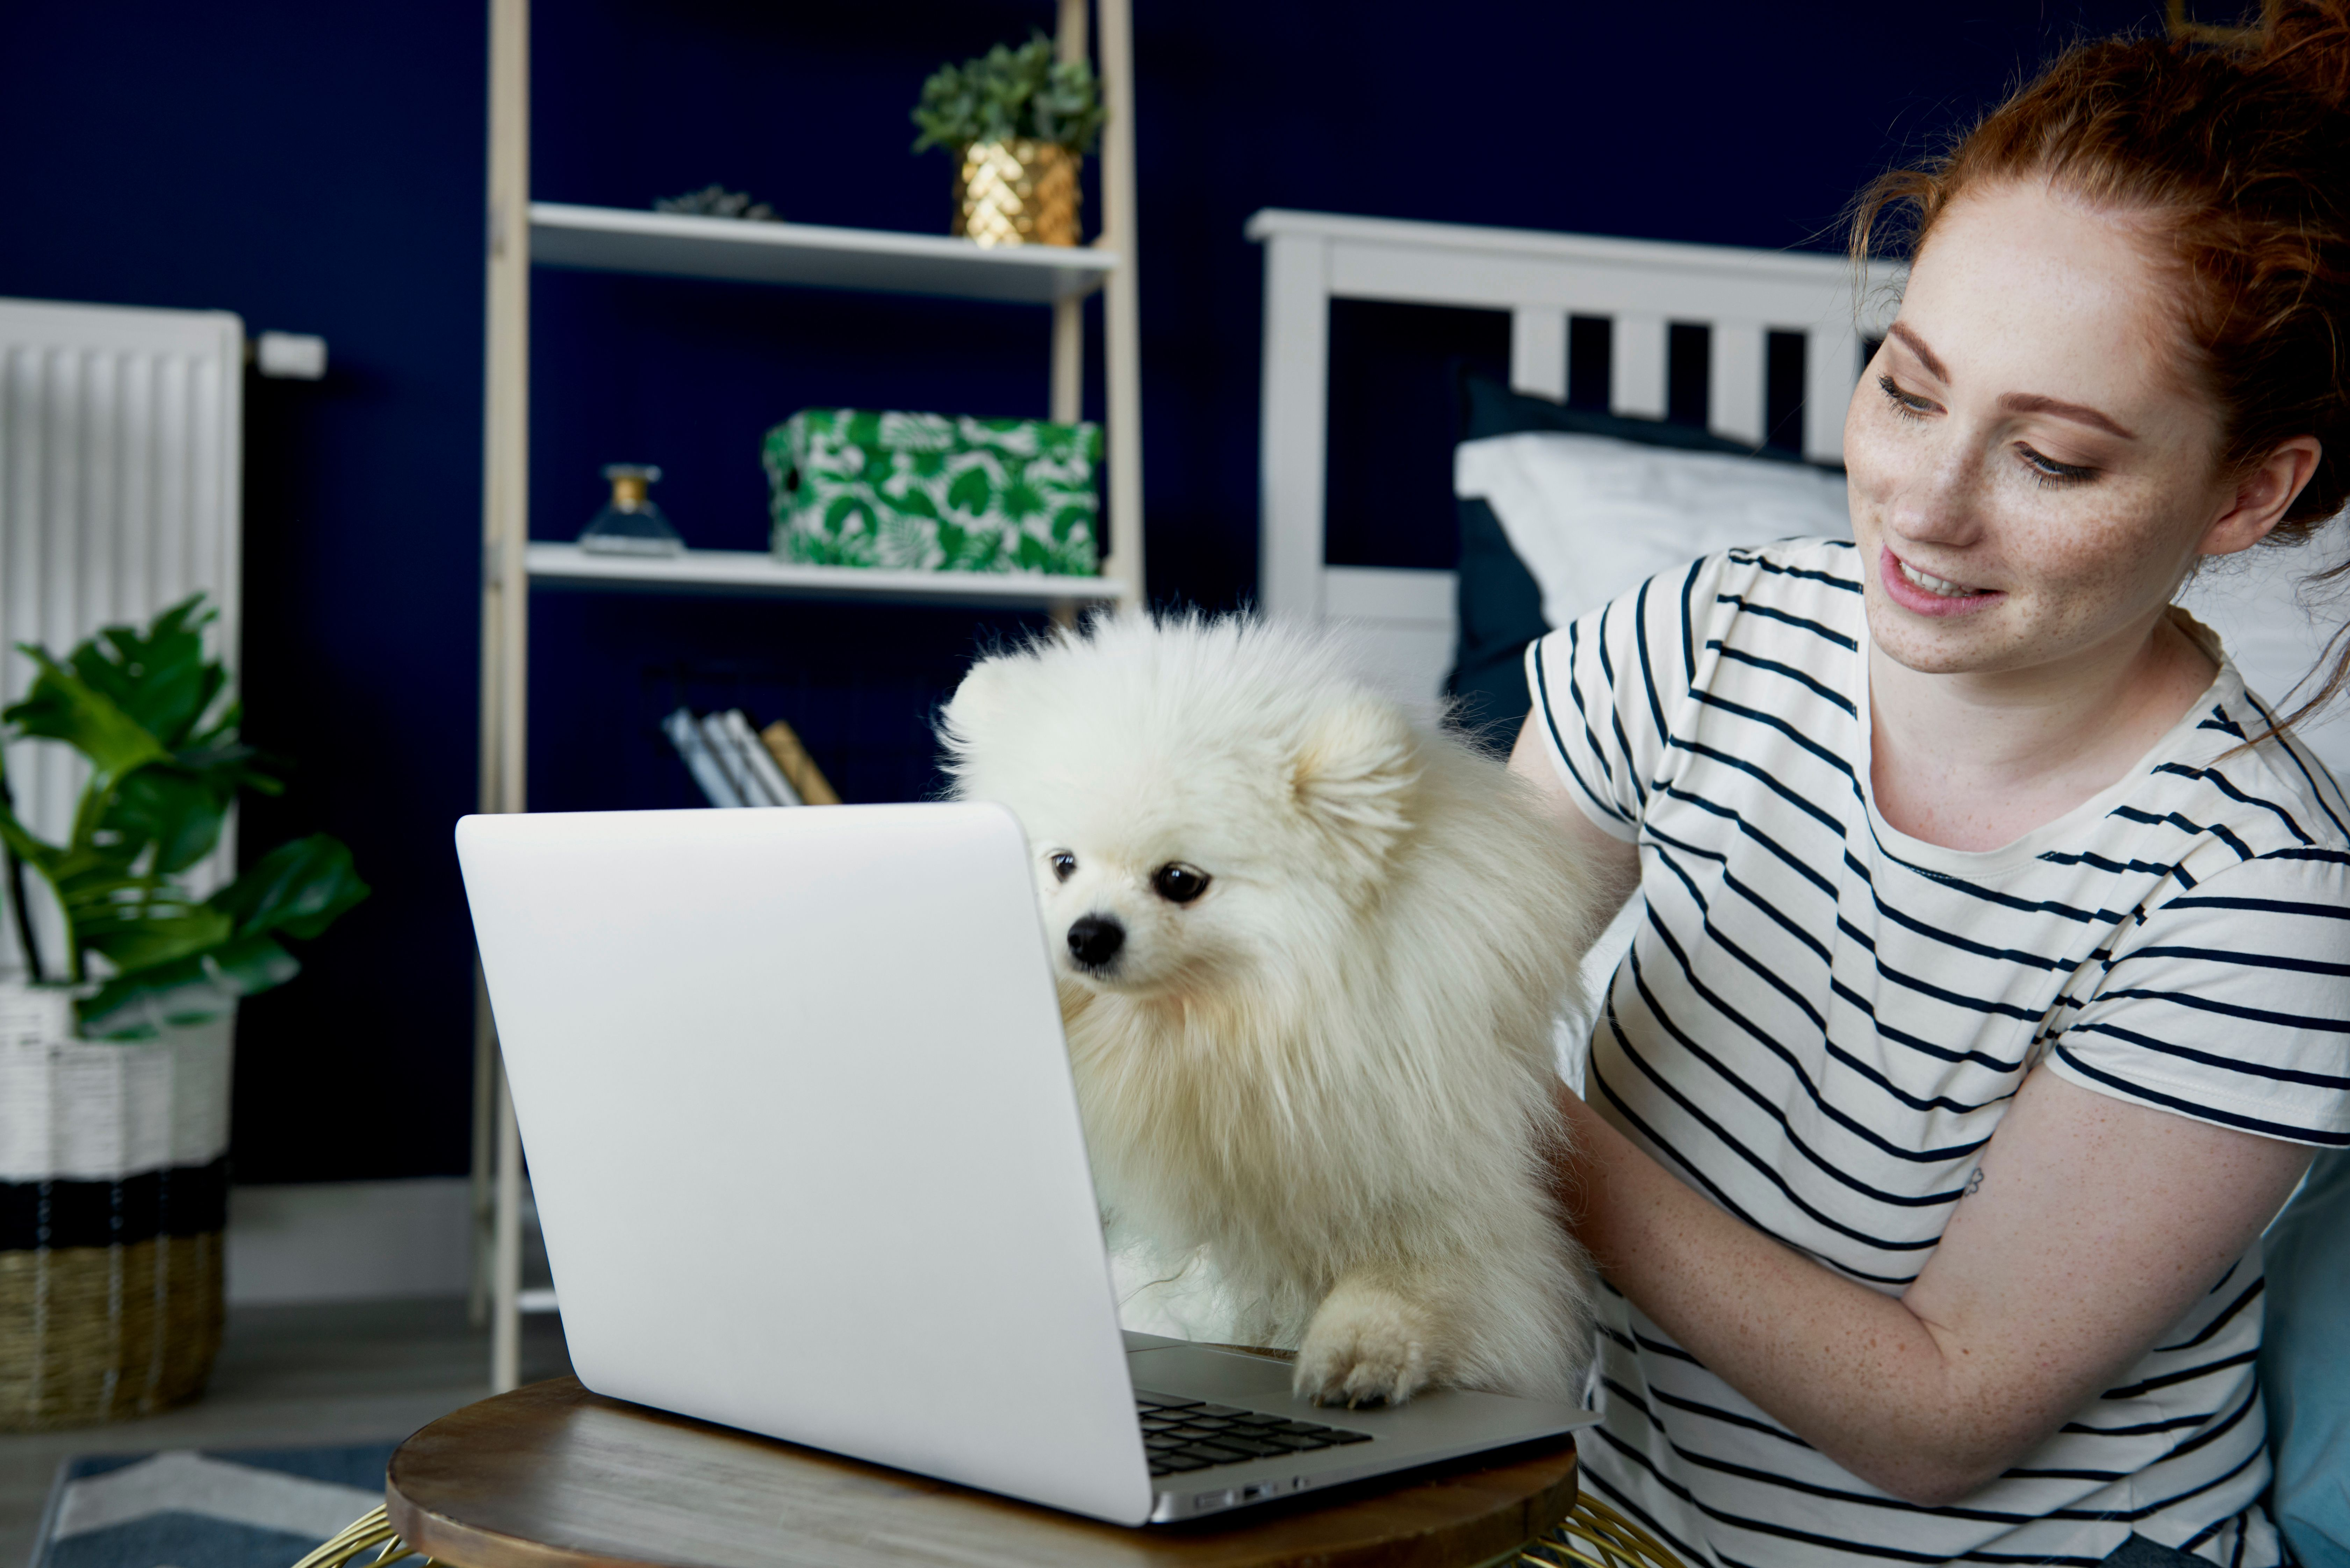 A Build To Rent tenant happily holding their white pet dog looking at a laptop while at home